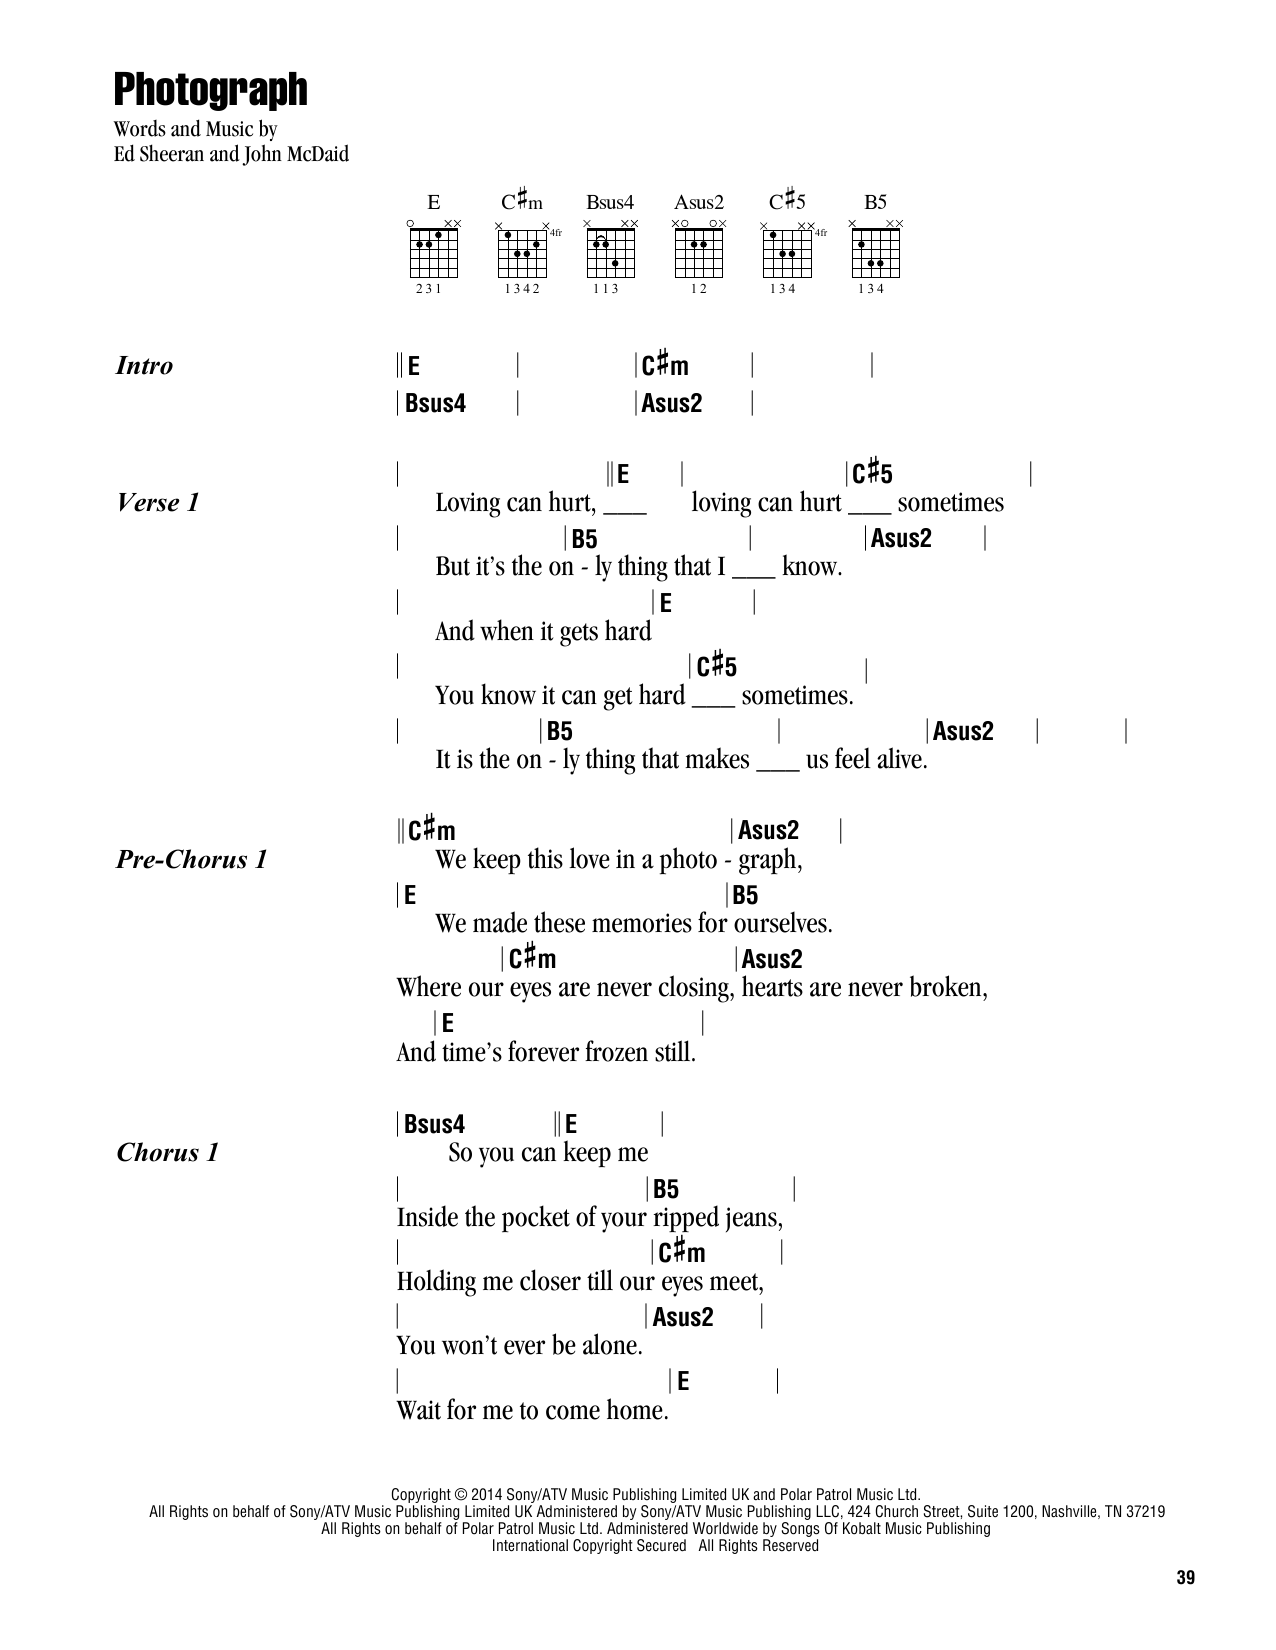 Photograph Sheet Music By Ed Sheeran Lyrics Chords 164017